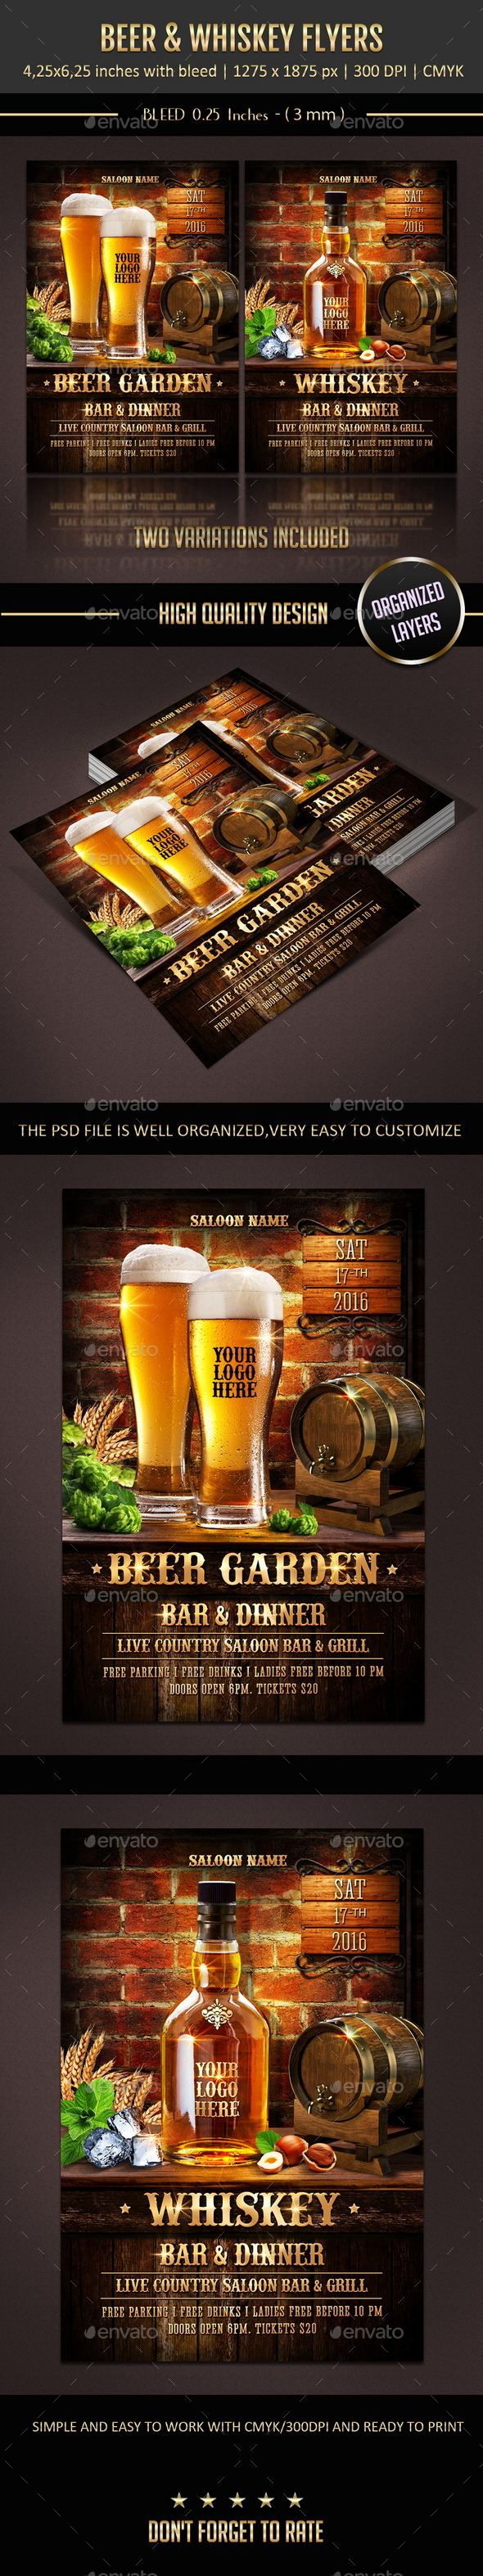 GraphicRiver Beer & Whiskey Flyers 10980435